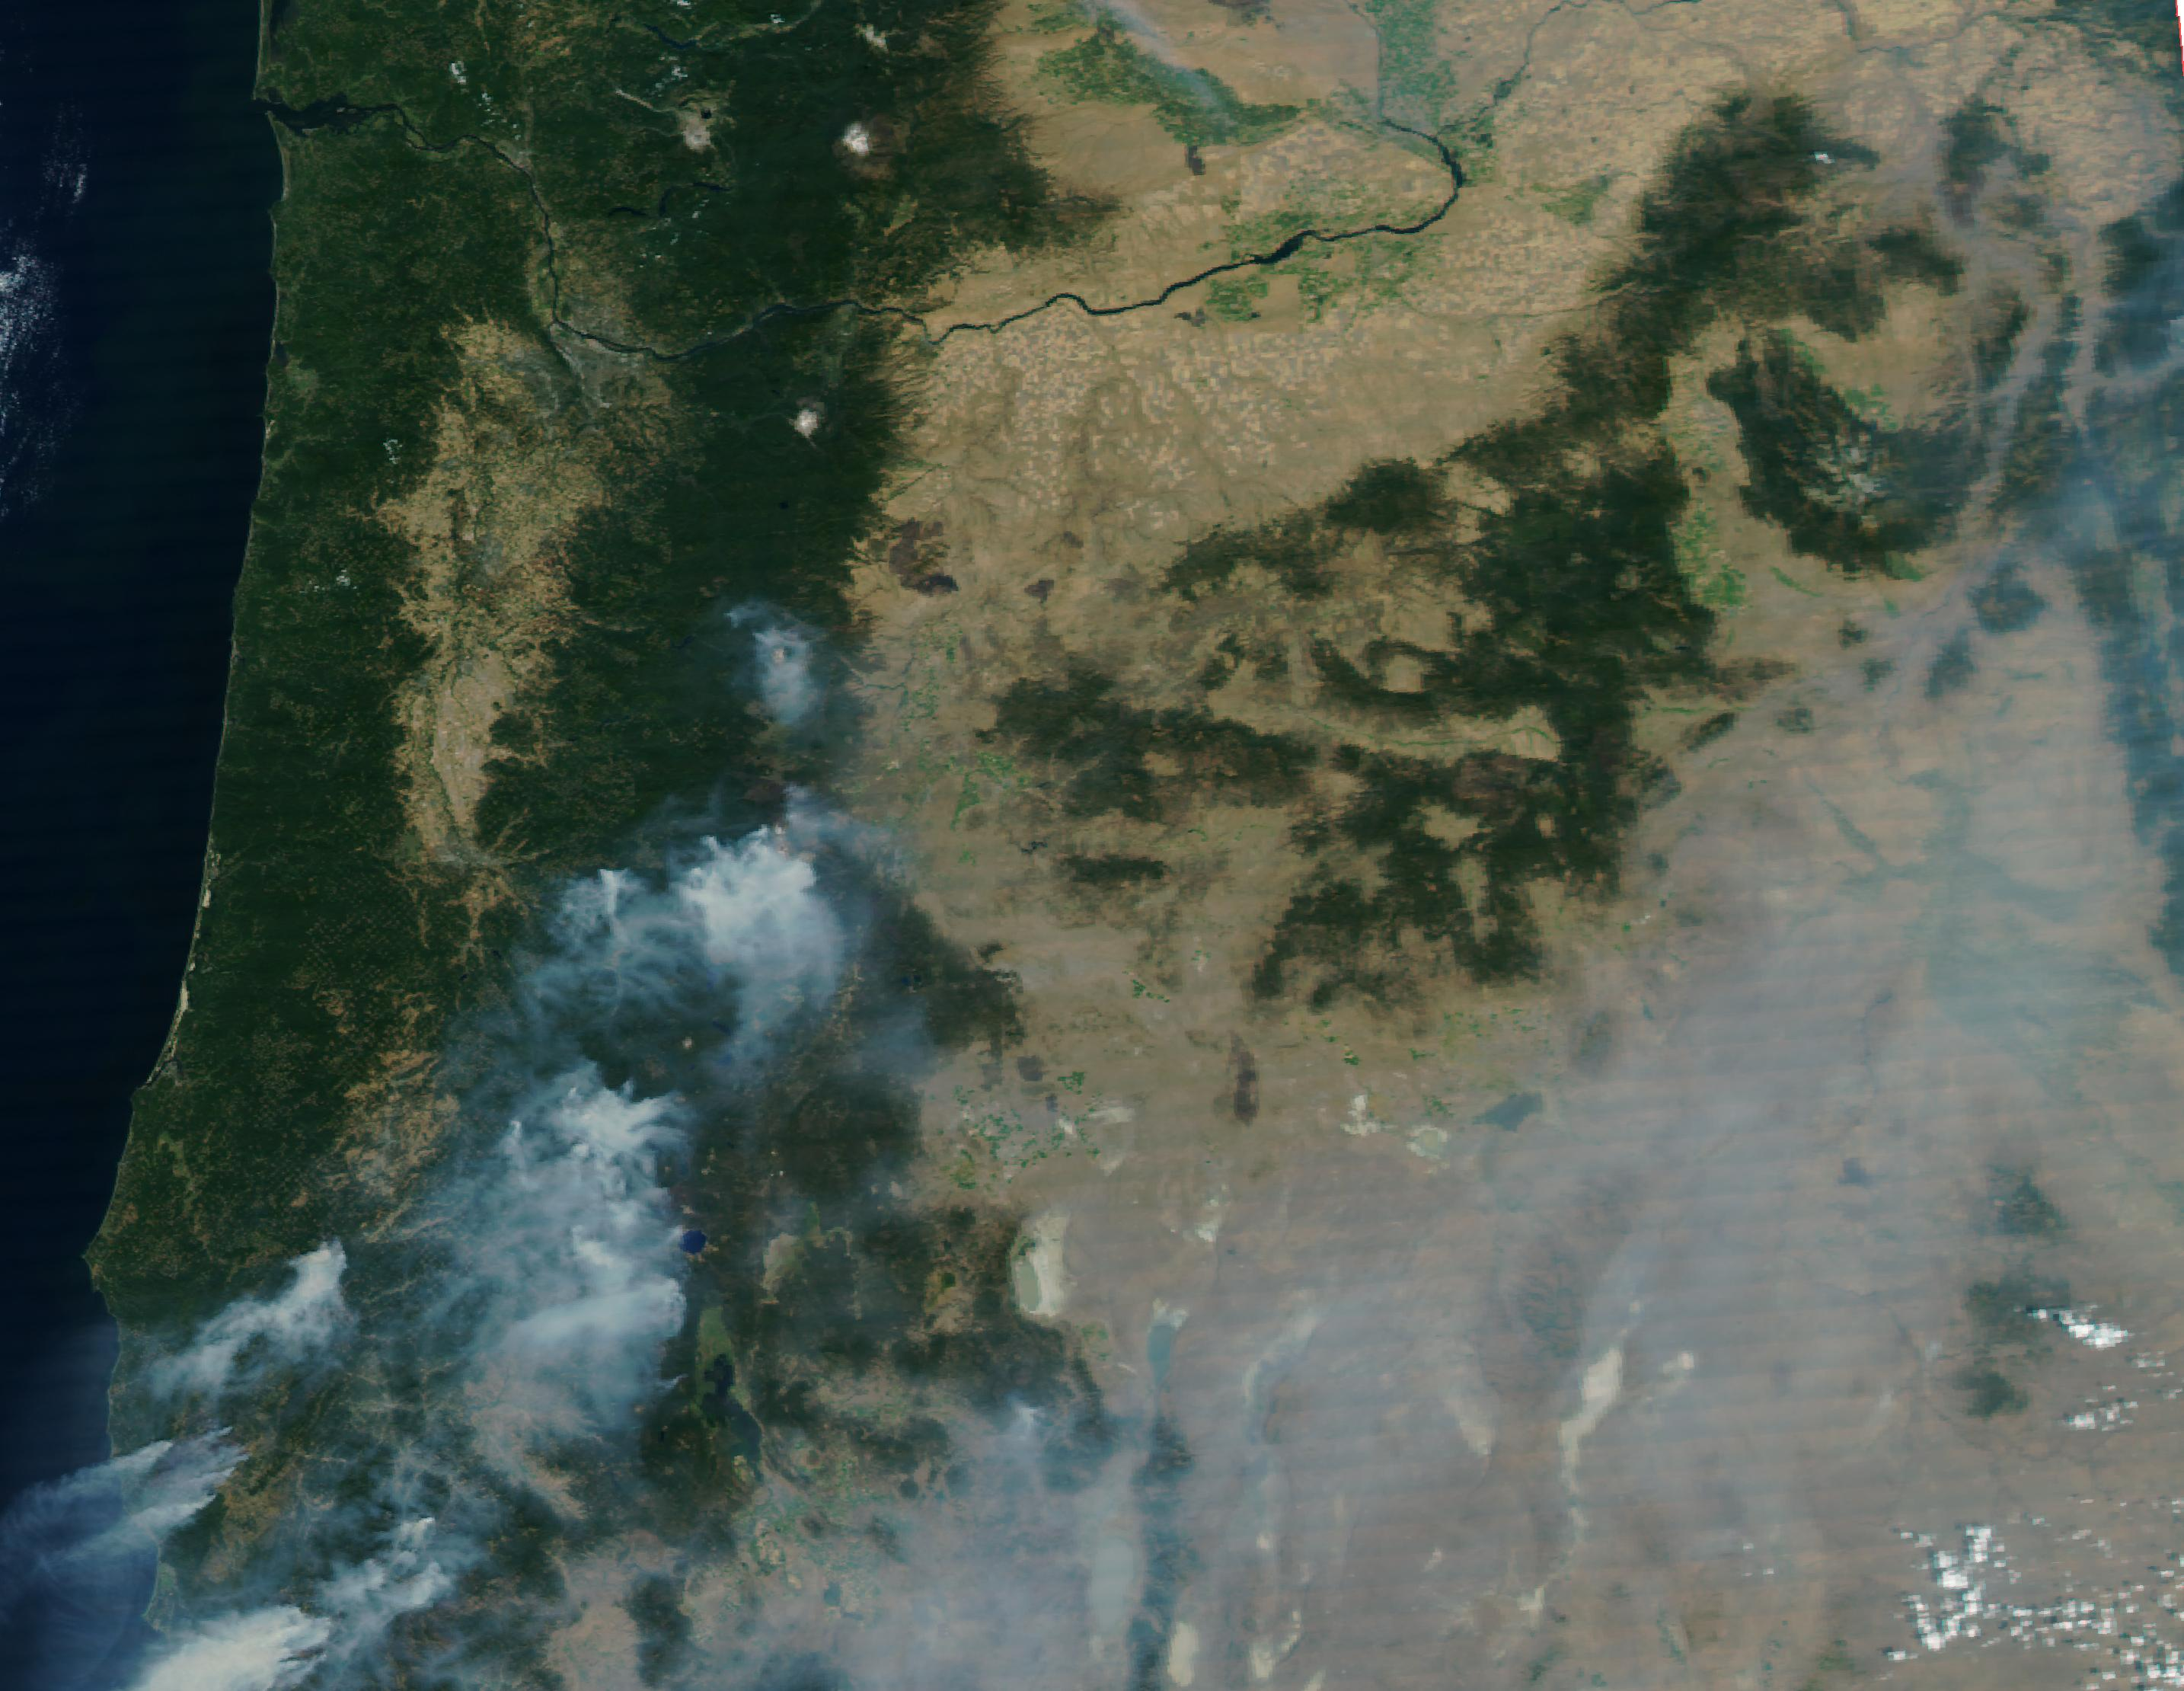 Smoke from from forest fires is visible over Oregon in this August 31, 2017, NASA satellite image. No image was available for September 1, but what a difference a few days makes ...